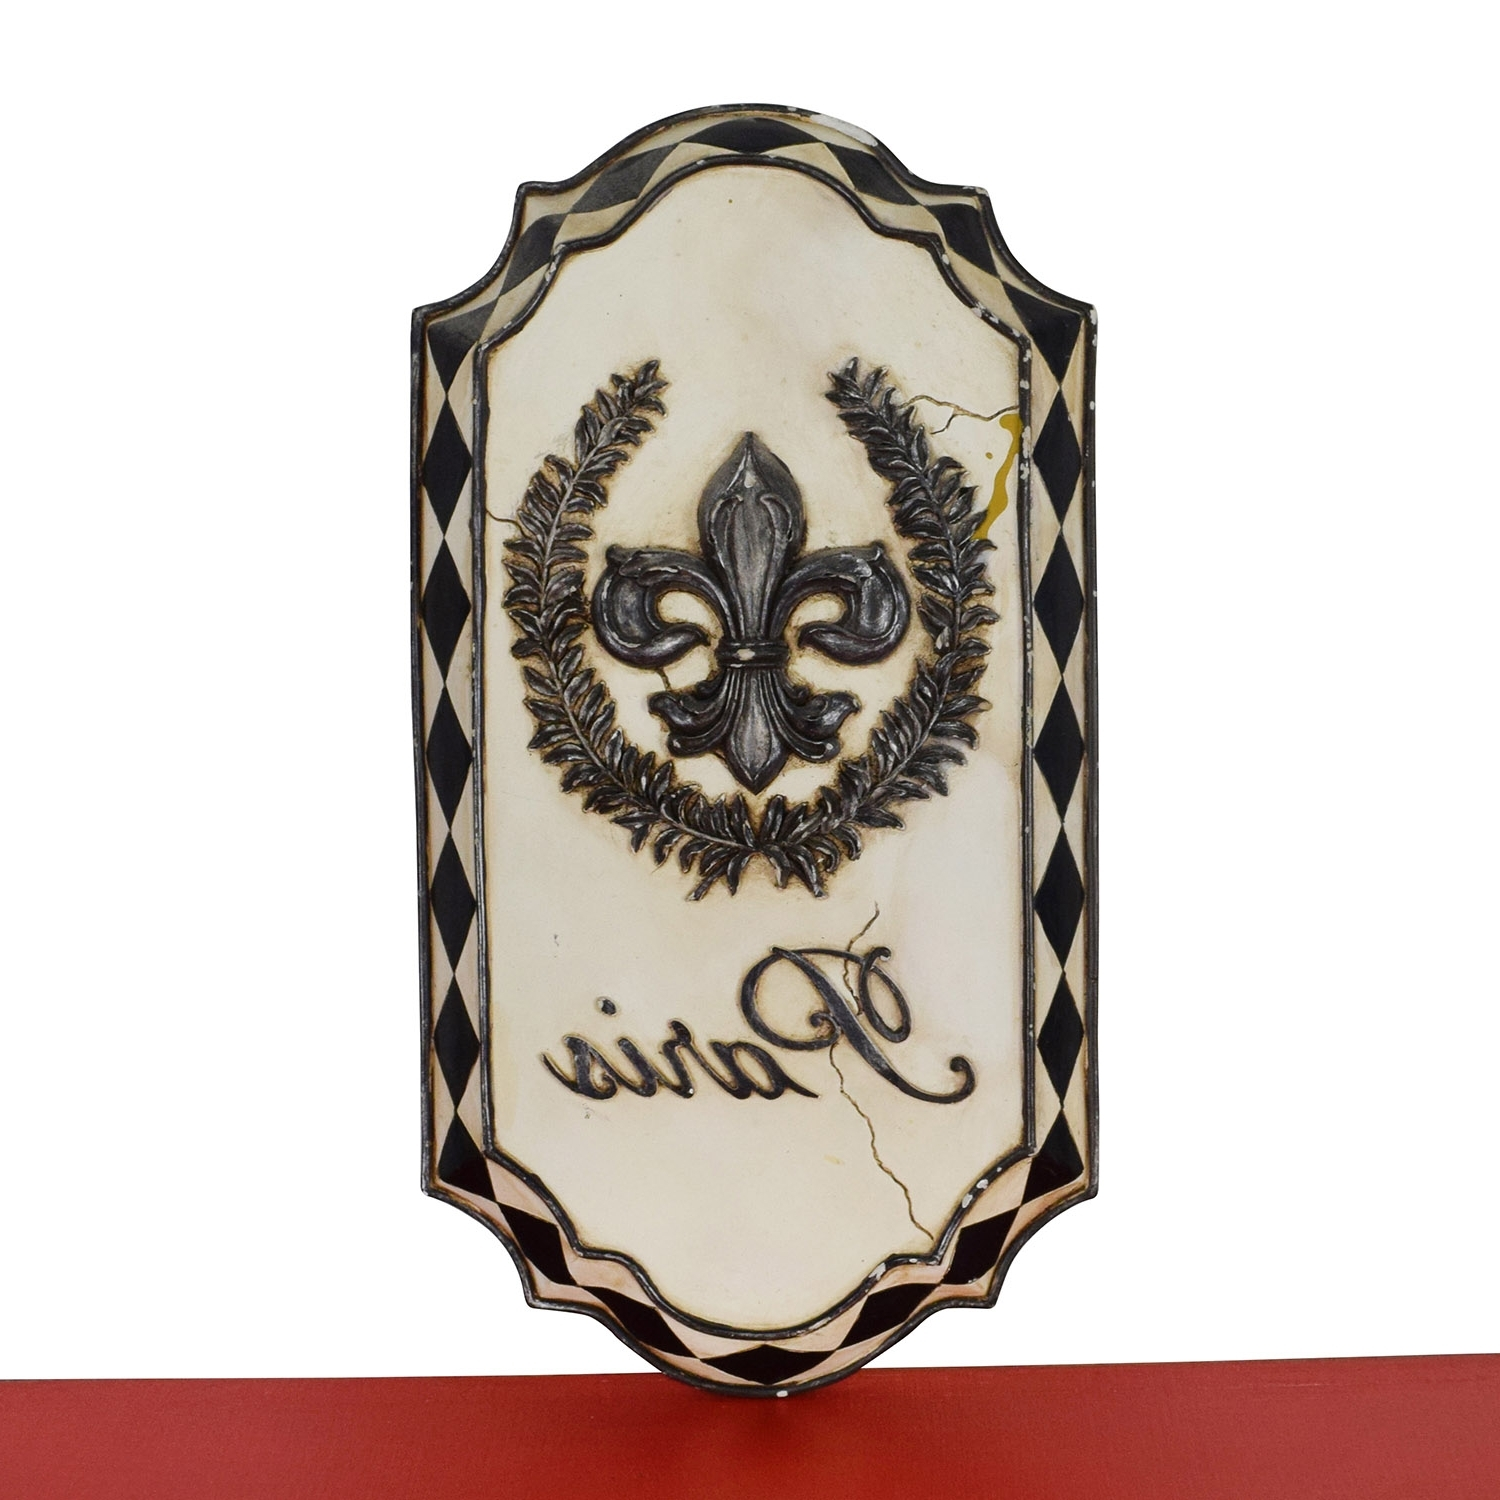 [%50% Off – Fleur De Lis Paris Wall Art / Decor With Regard To Most Current Fleur De Lis Wall Art|Fleur De Lis Wall Art For 2017 50% Off – Fleur De Lis Paris Wall Art / Decor|2017 Fleur De Lis Wall Art Intended For 50% Off – Fleur De Lis Paris Wall Art / Decor|Newest 50% Off – Fleur De Lis Paris Wall Art / Decor With Fleur De Lis Wall Art%] (View 19 of 20)